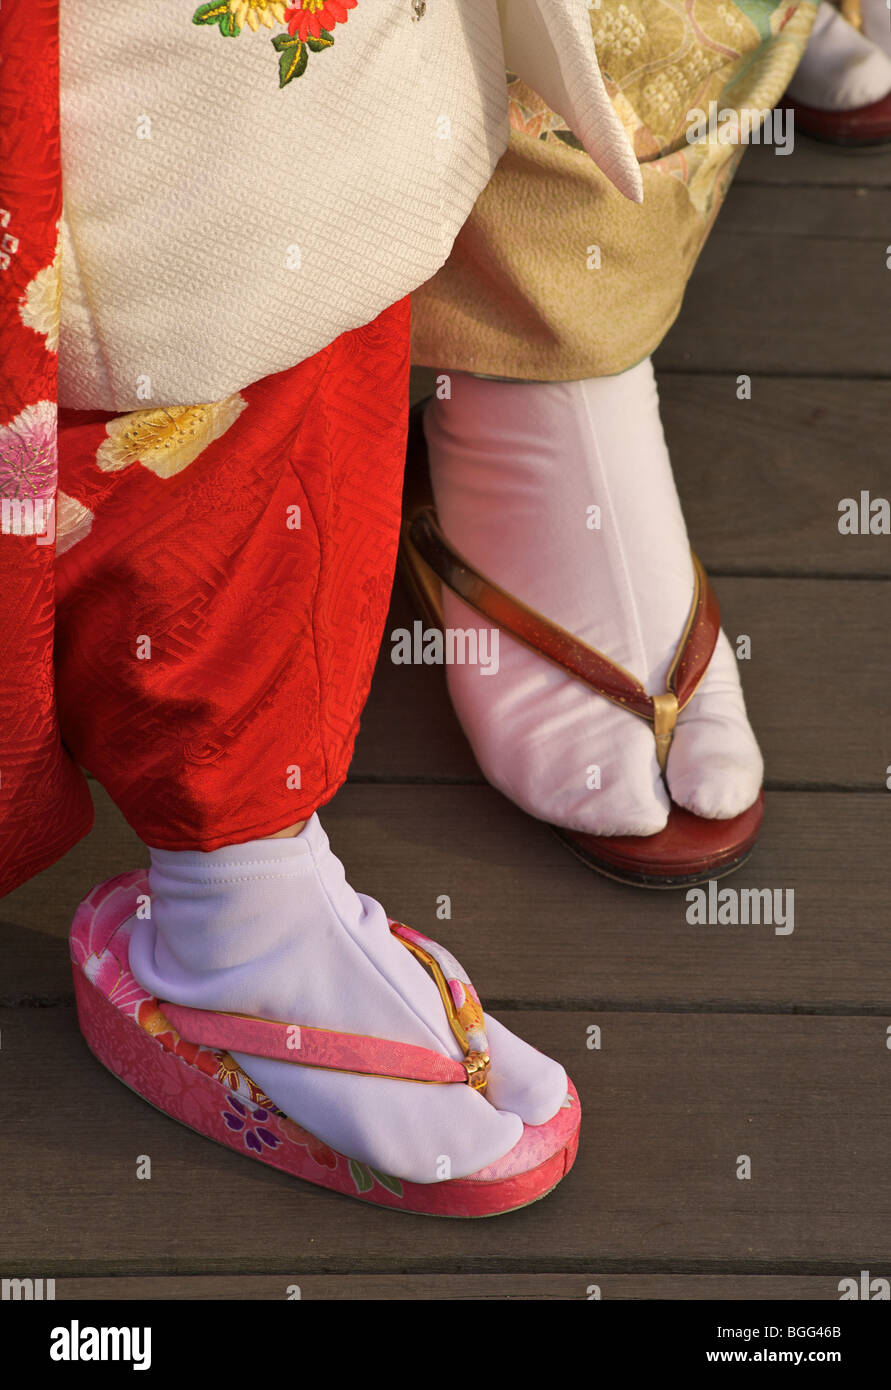 Traditional Japanese footwear. Mother and daughter side by side. Nara prefecture, Japan - Stock Image